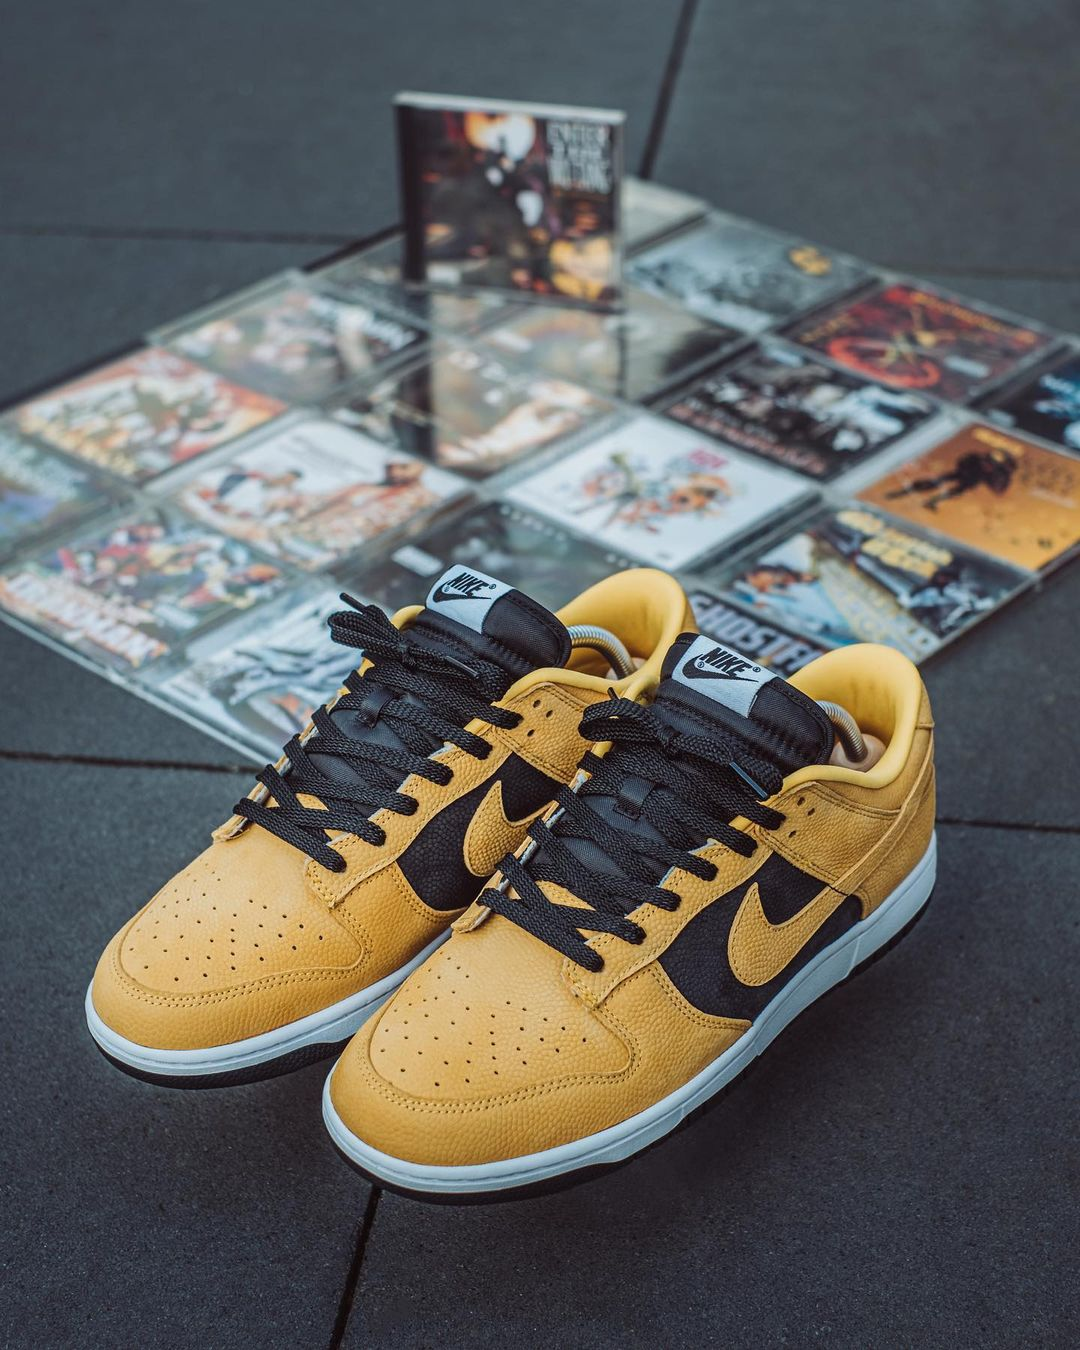 Nike Dunk Low by You Wu Tang pimharing